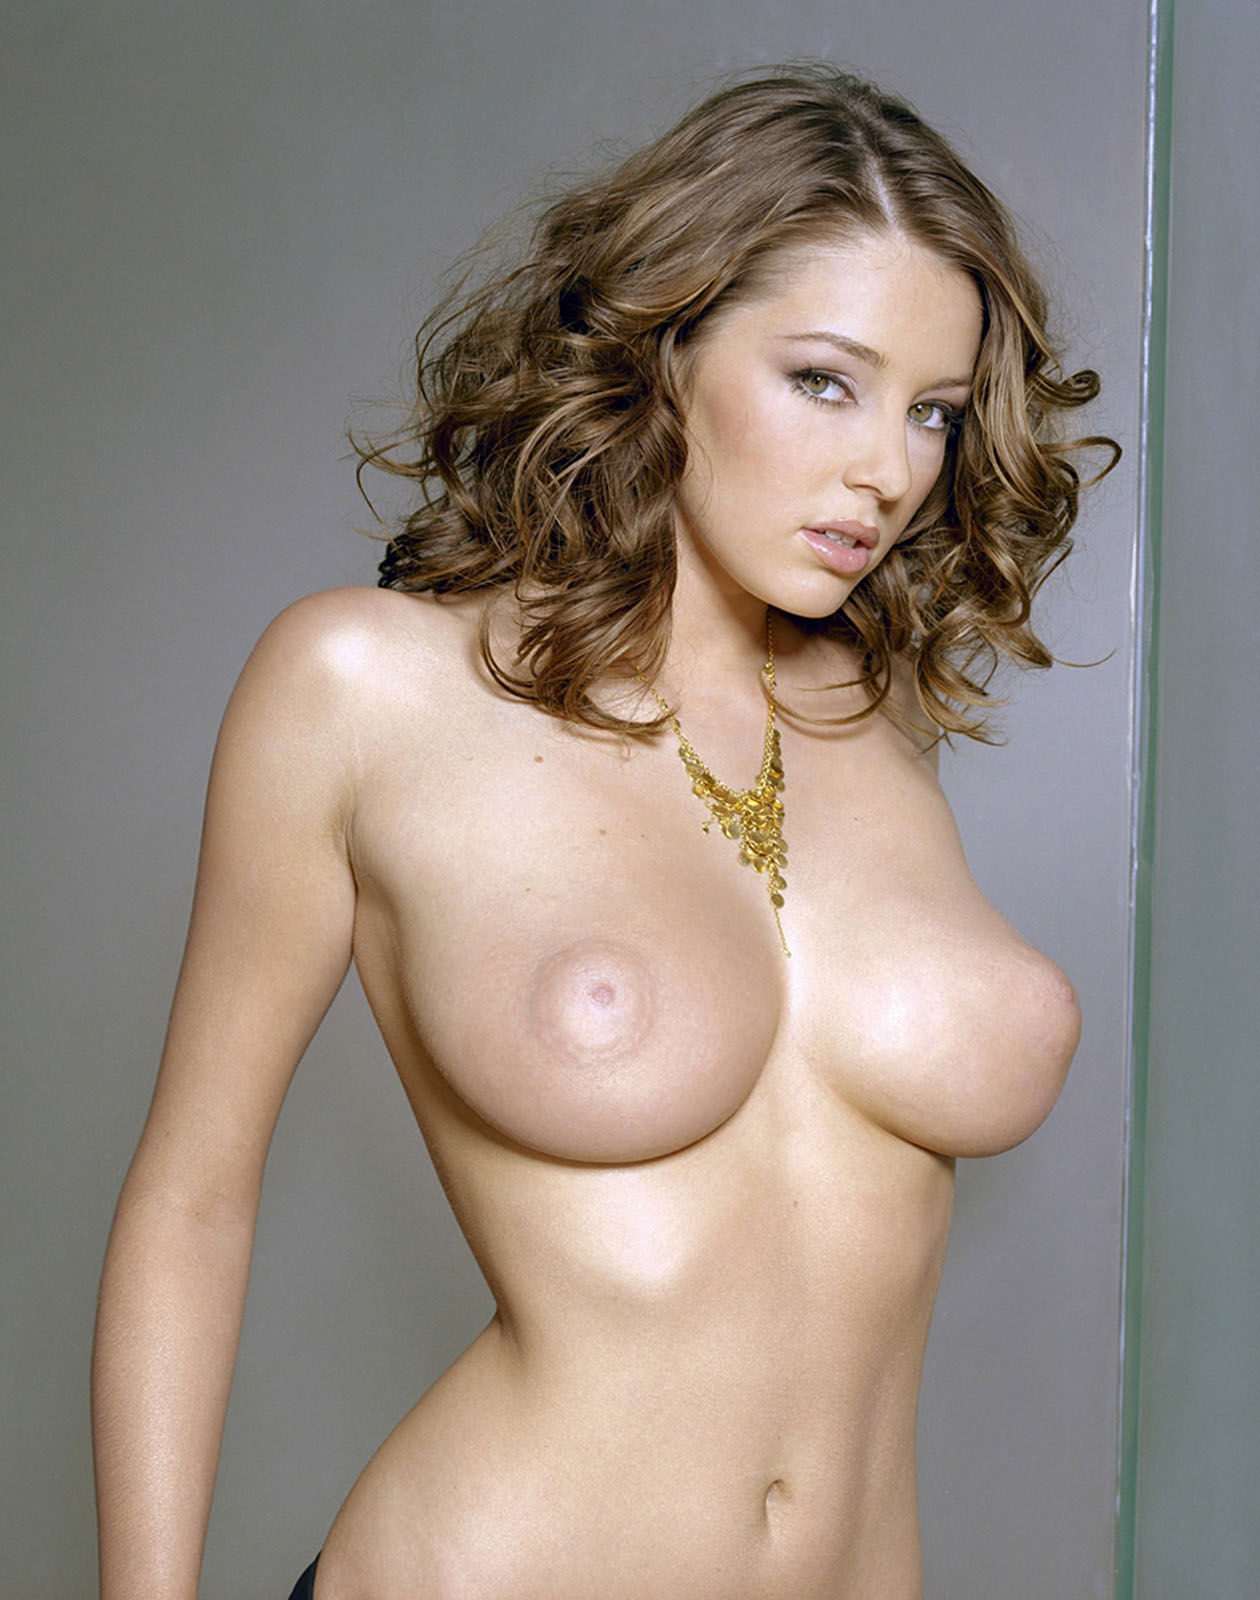 keeley hazell photoshoot video